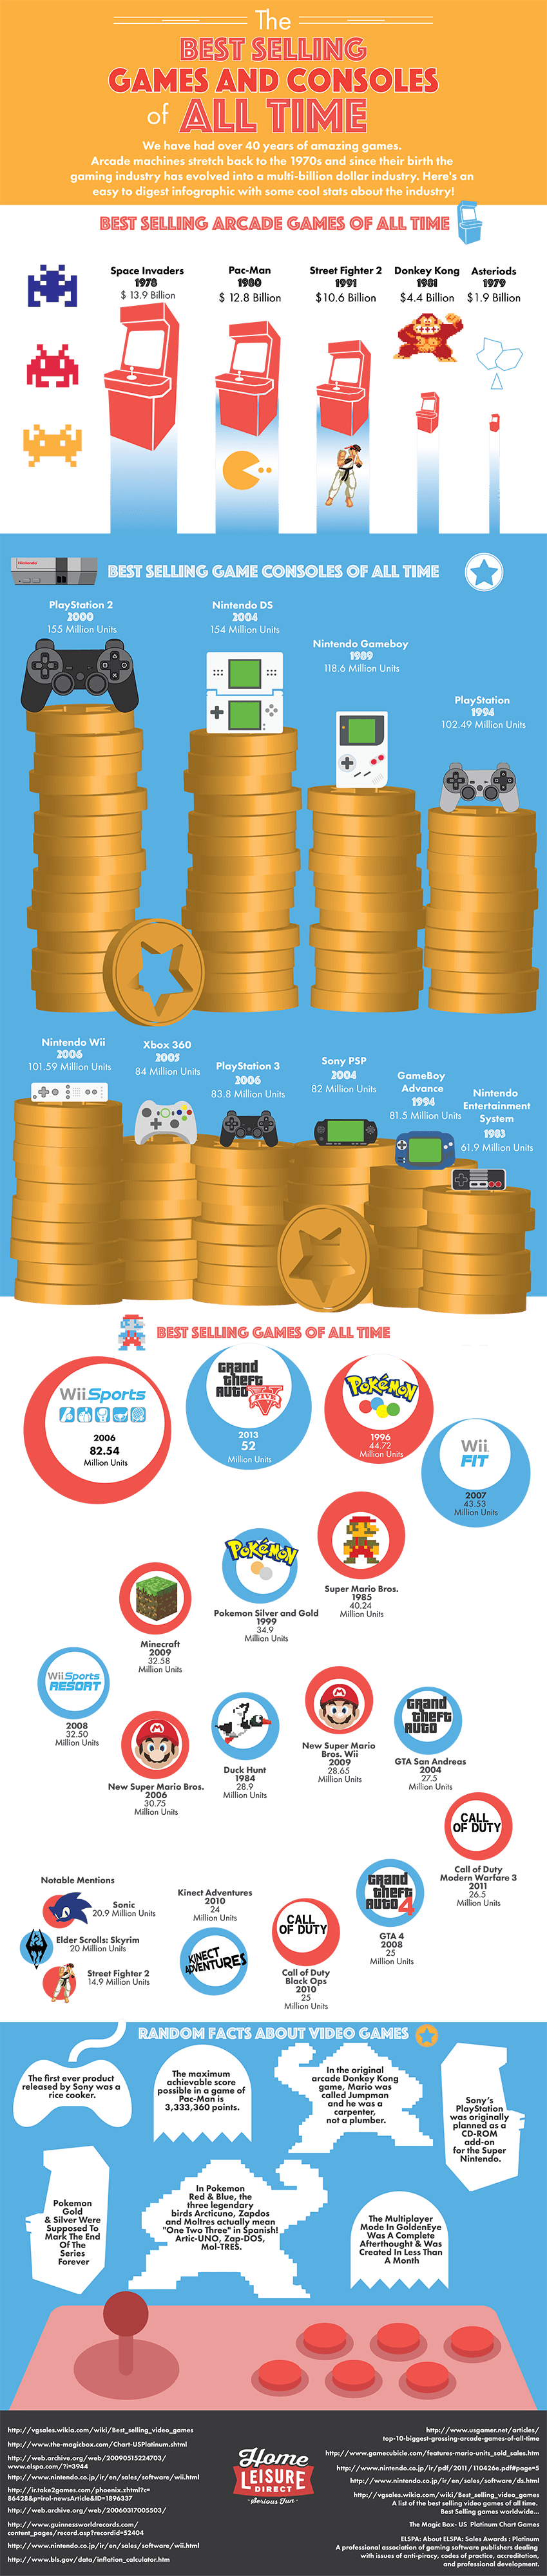 Infographic: The Best Selling Games and Consoles of All Time